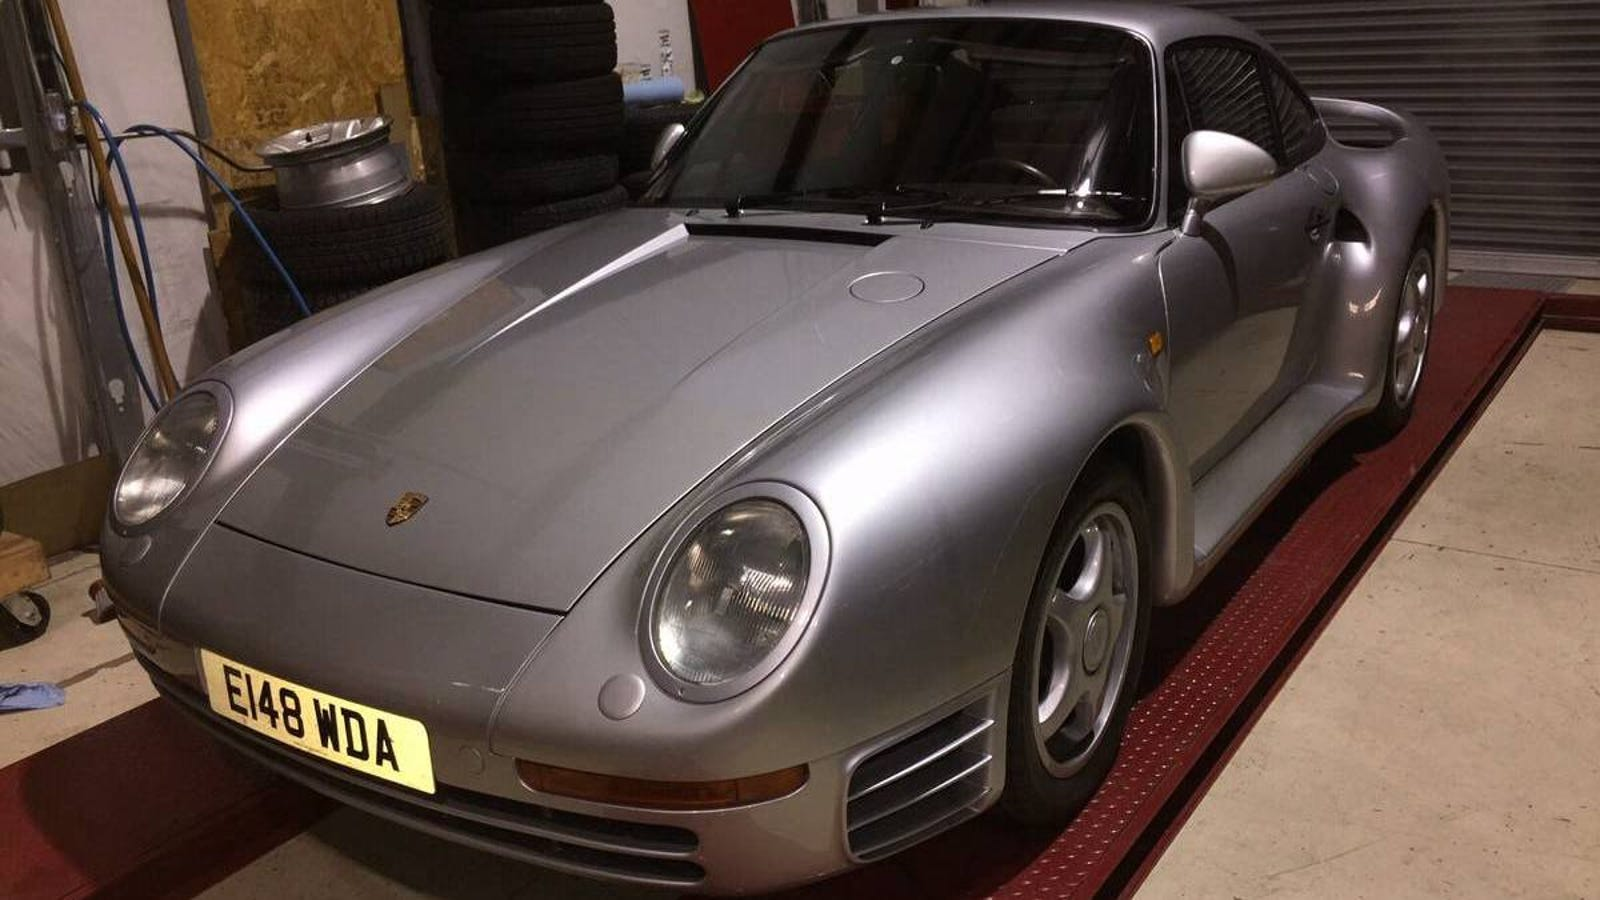 Porsche 959 For Sale >> Here S A Porsche 959 For Sale For 1 2 Million On Uh Craigslist